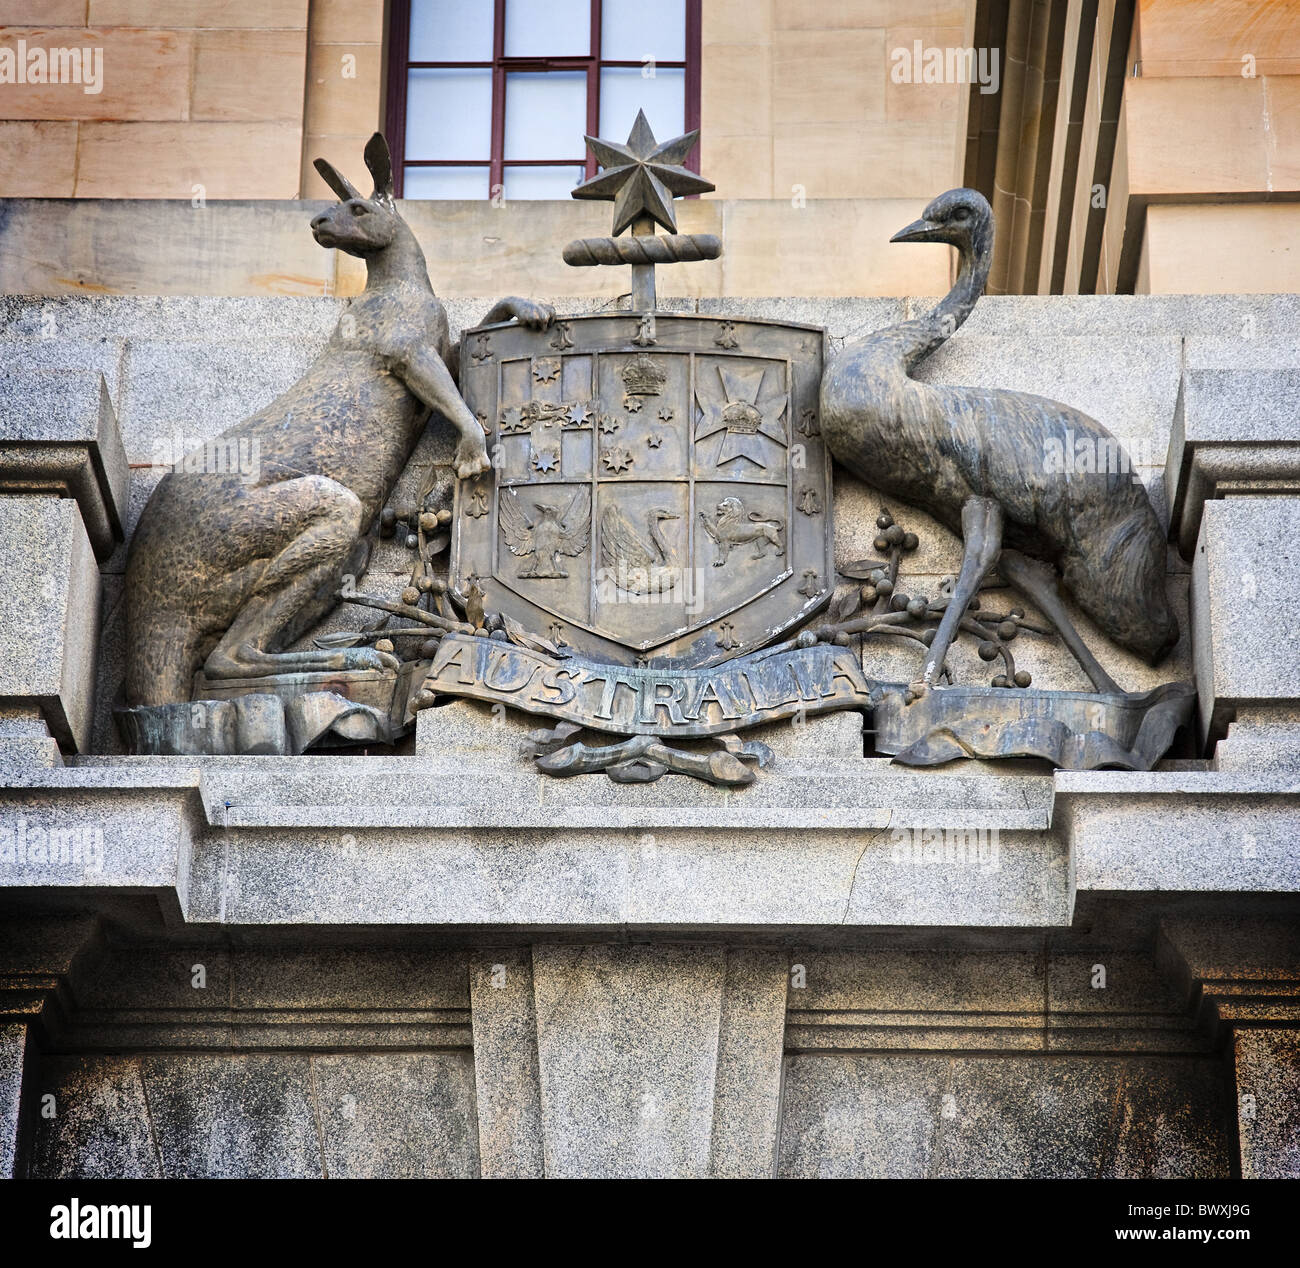 Australian coat of arms featuring a kangaroo and an emu on the General Post Office building in Perth Western Australia - Stock Image